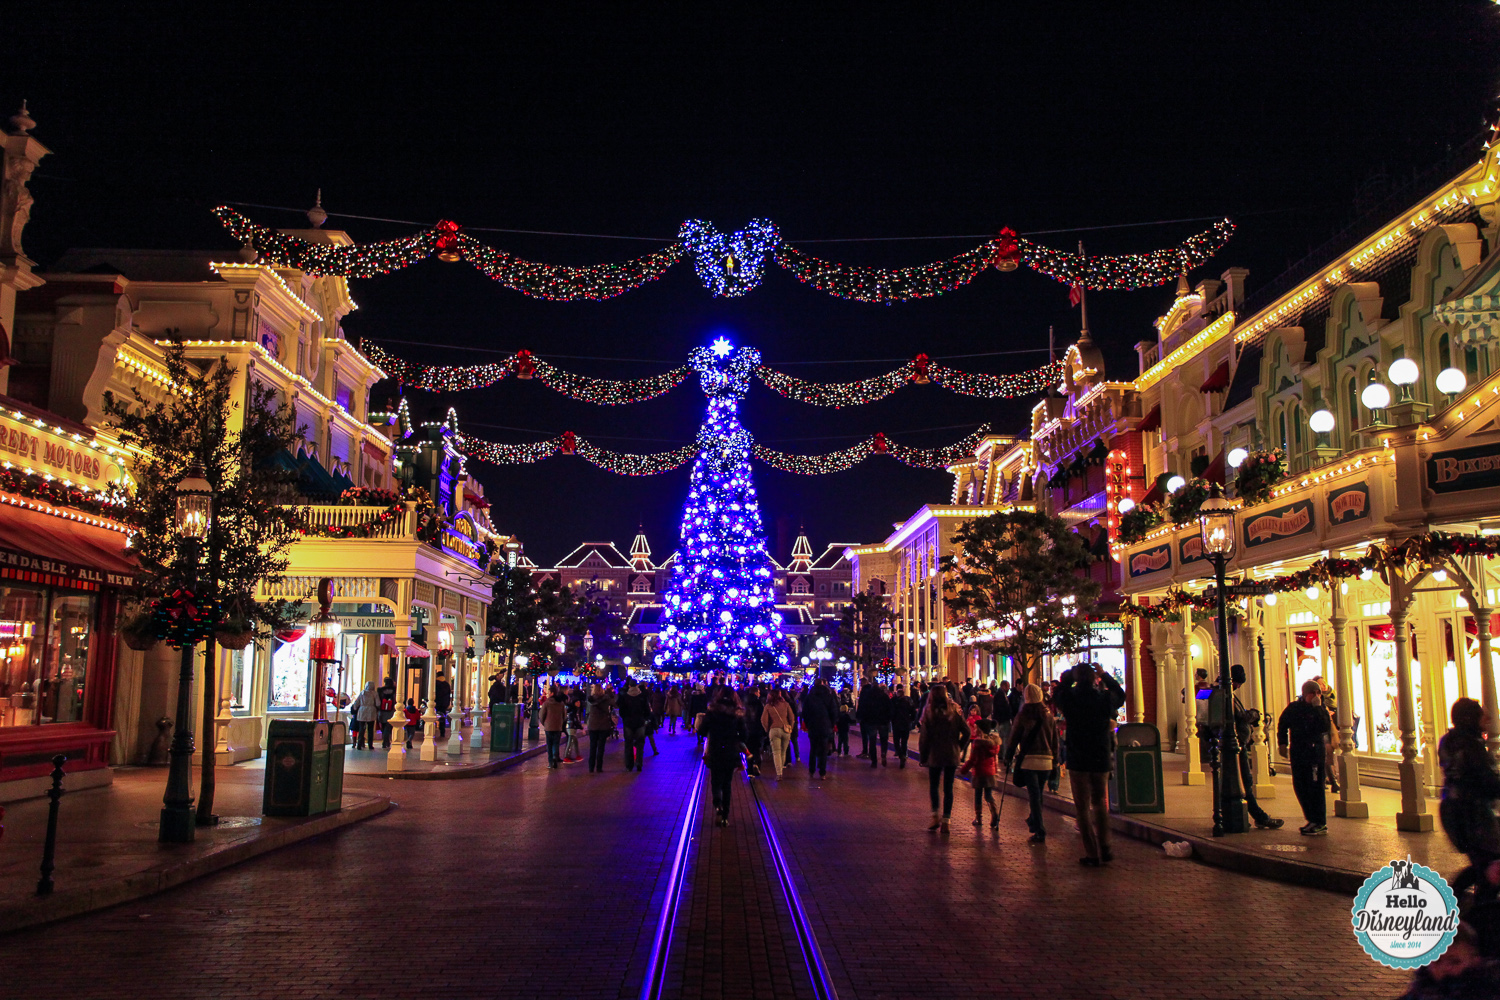 enchanted-christmas-disneyland-paris-2014-27